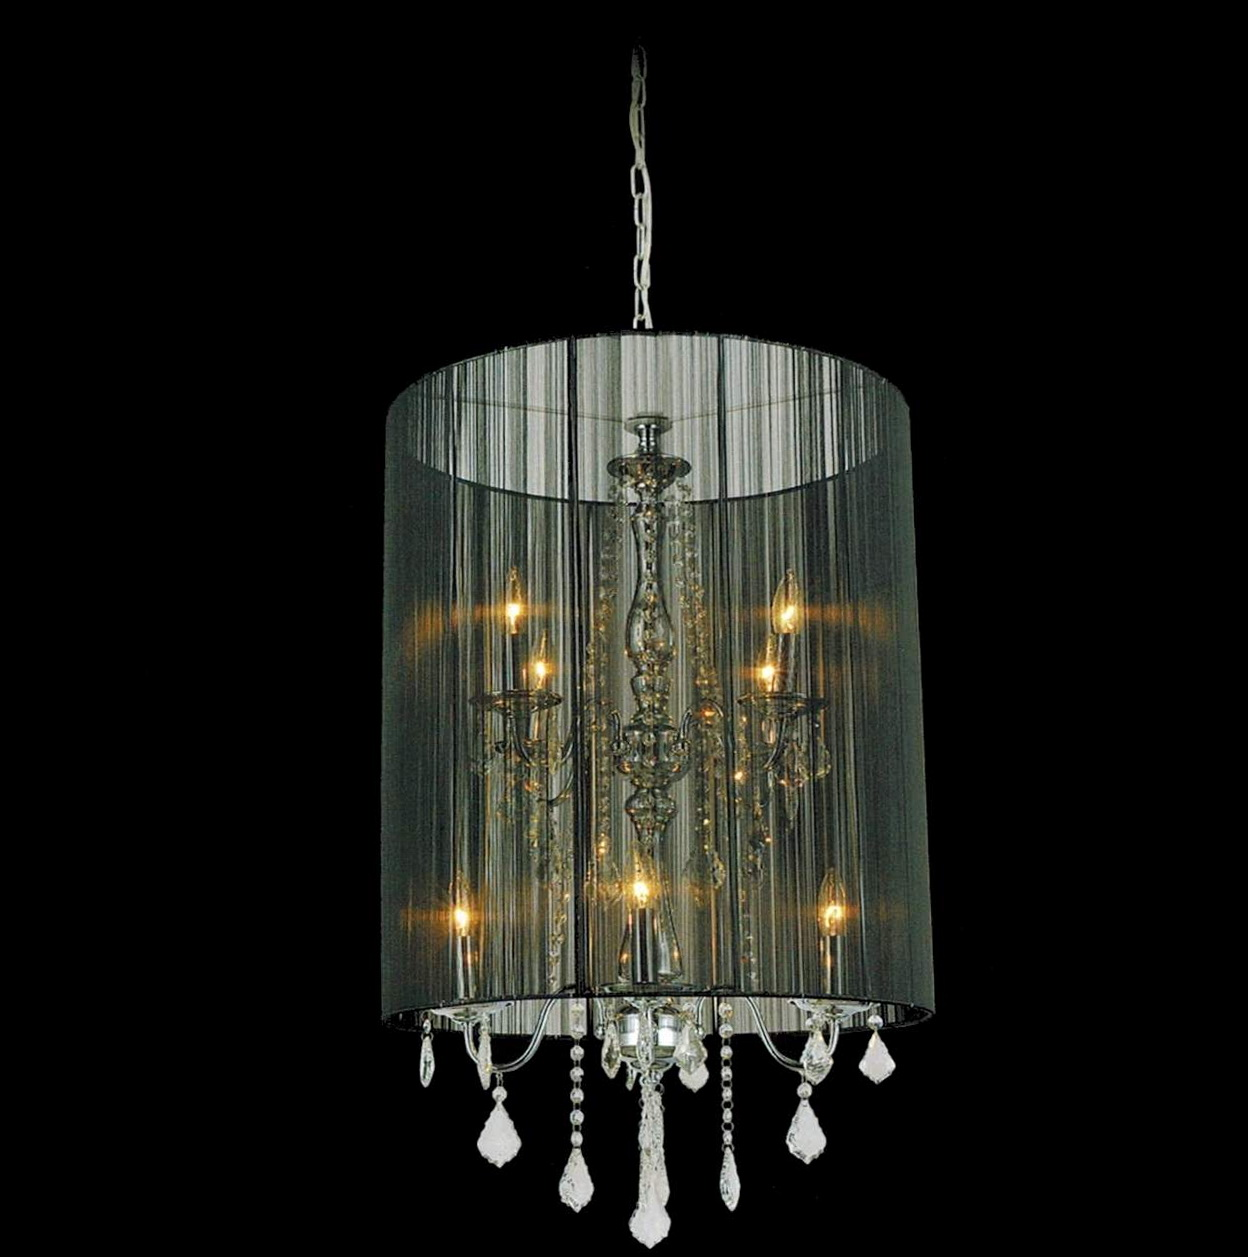 Drum Shade Chandeliers Pottery Barn Home Design Ideas